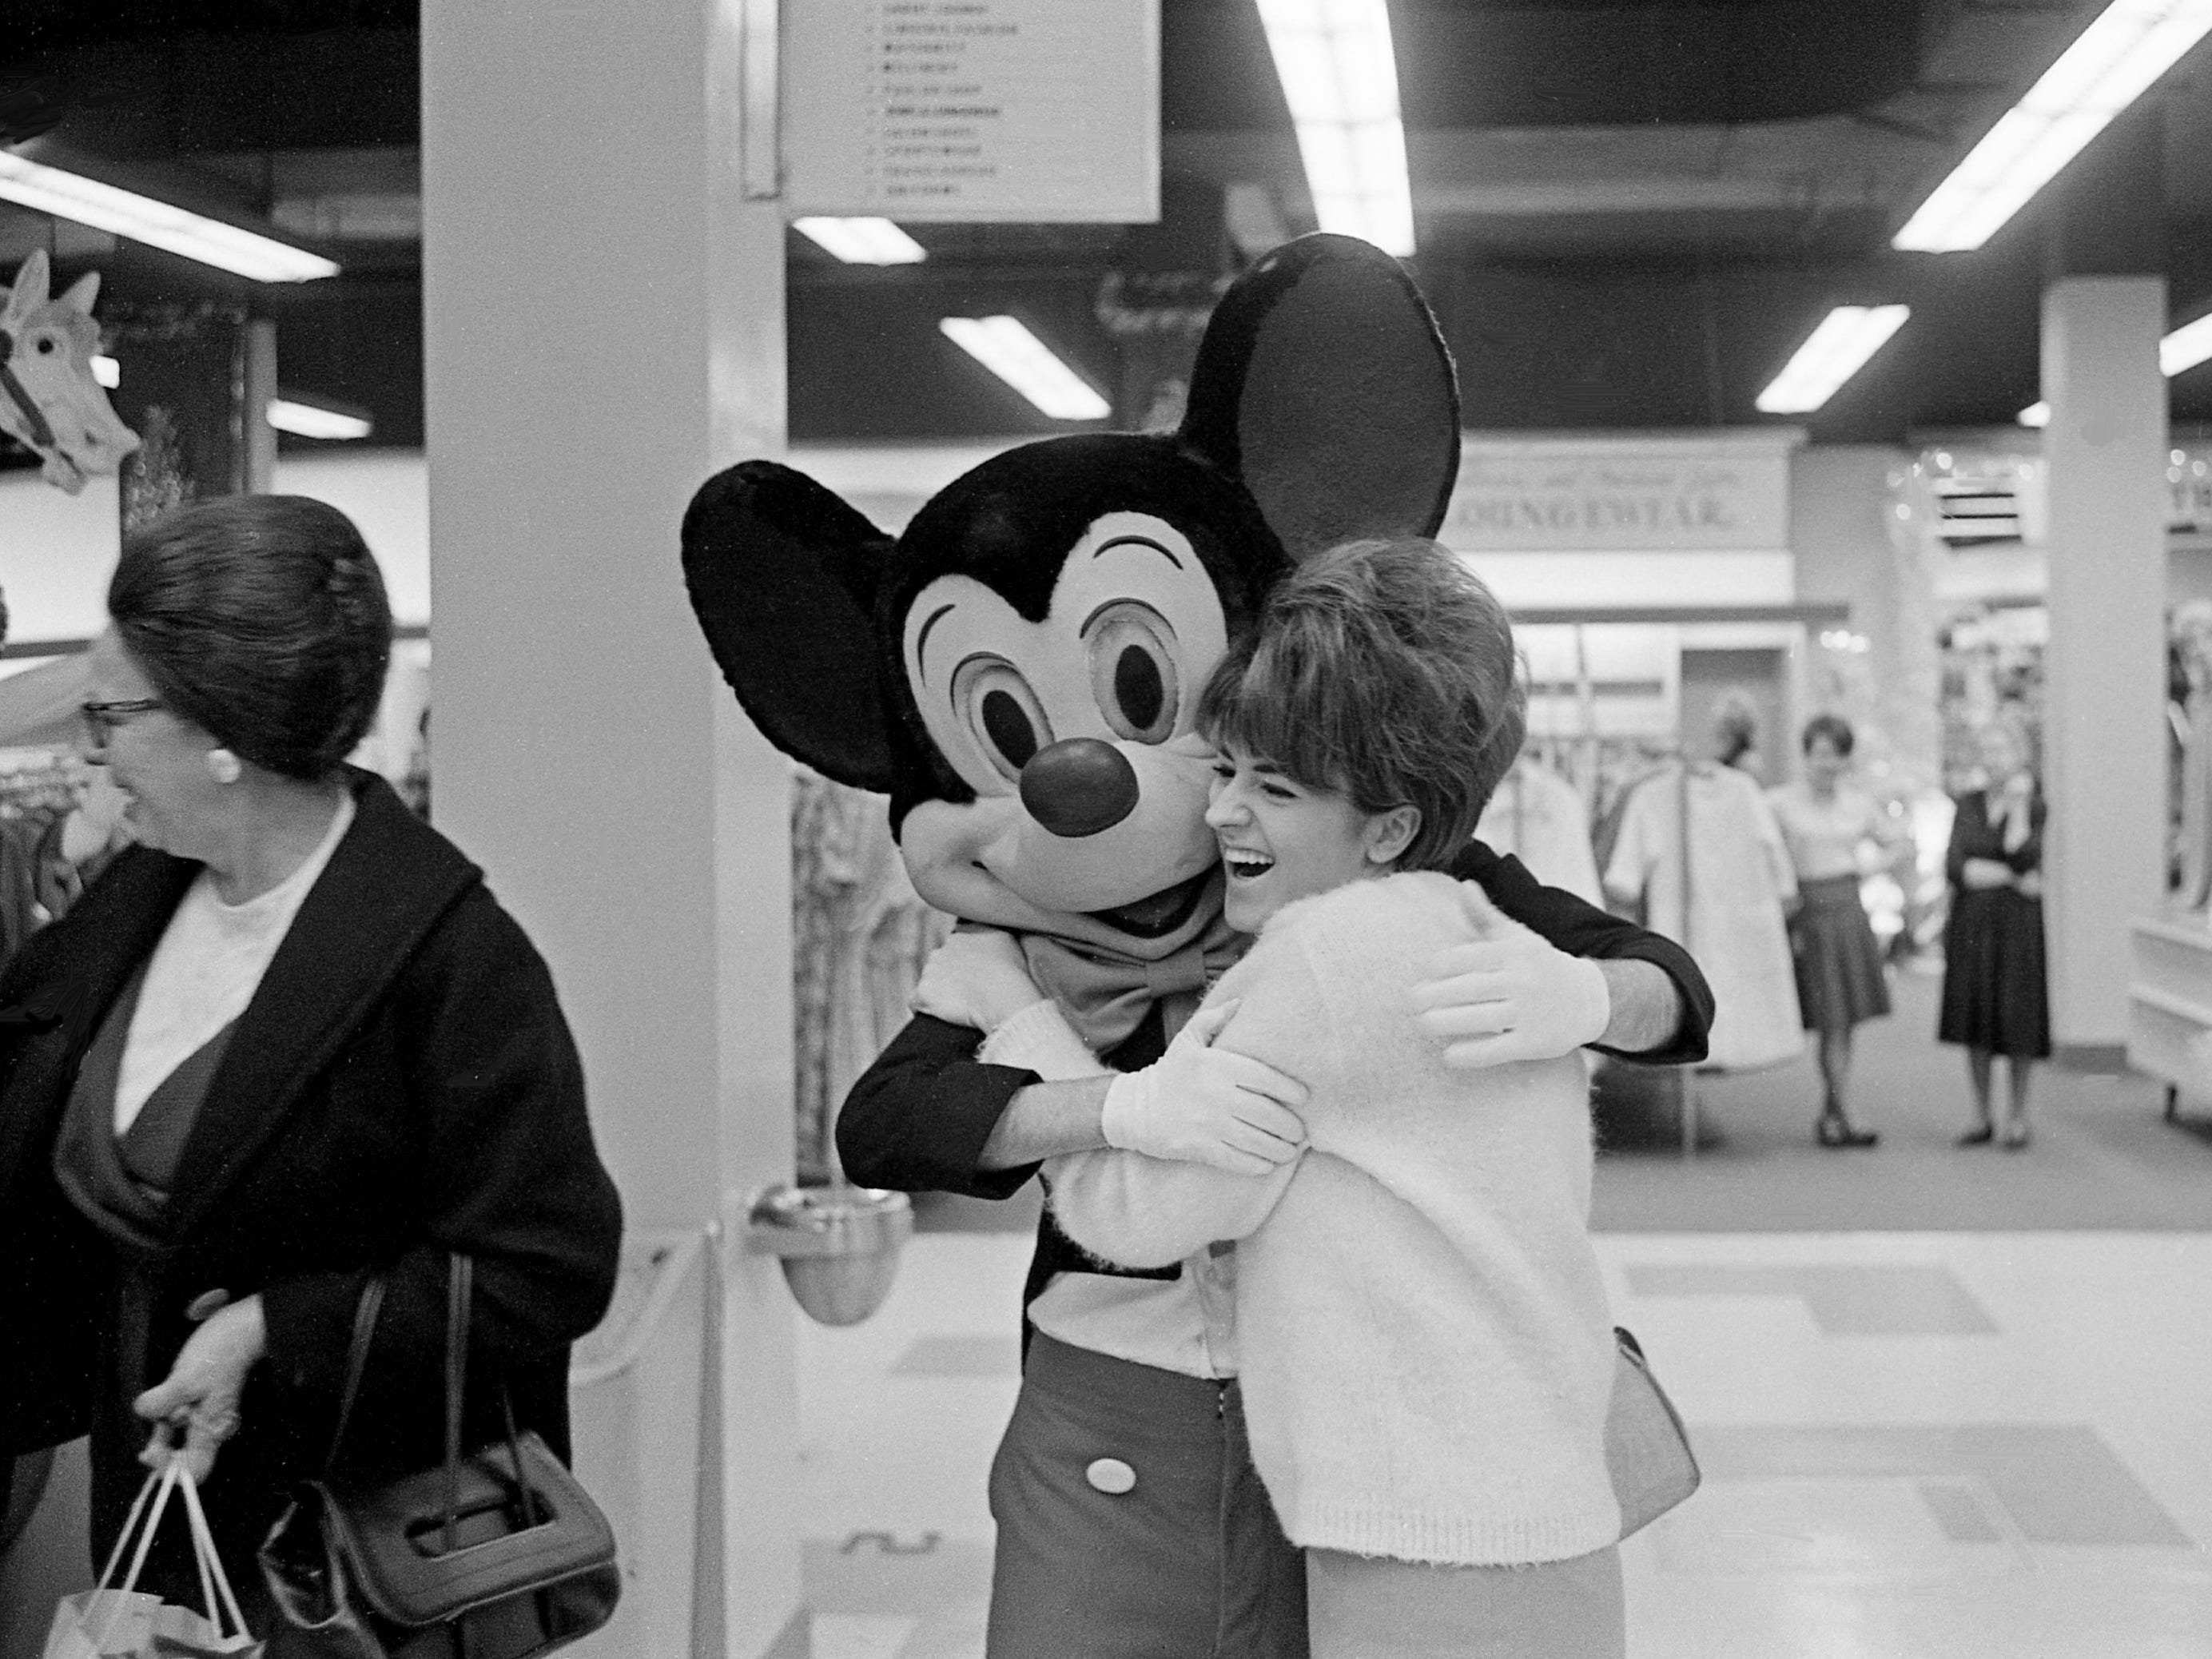 Mickey Mouse surprises a Christmas shopper with a big bear hug at Harveys downtown department store Dec. 9, 1965. Playing Mickey for the day and story is Tennessean reporter William Greenburg.